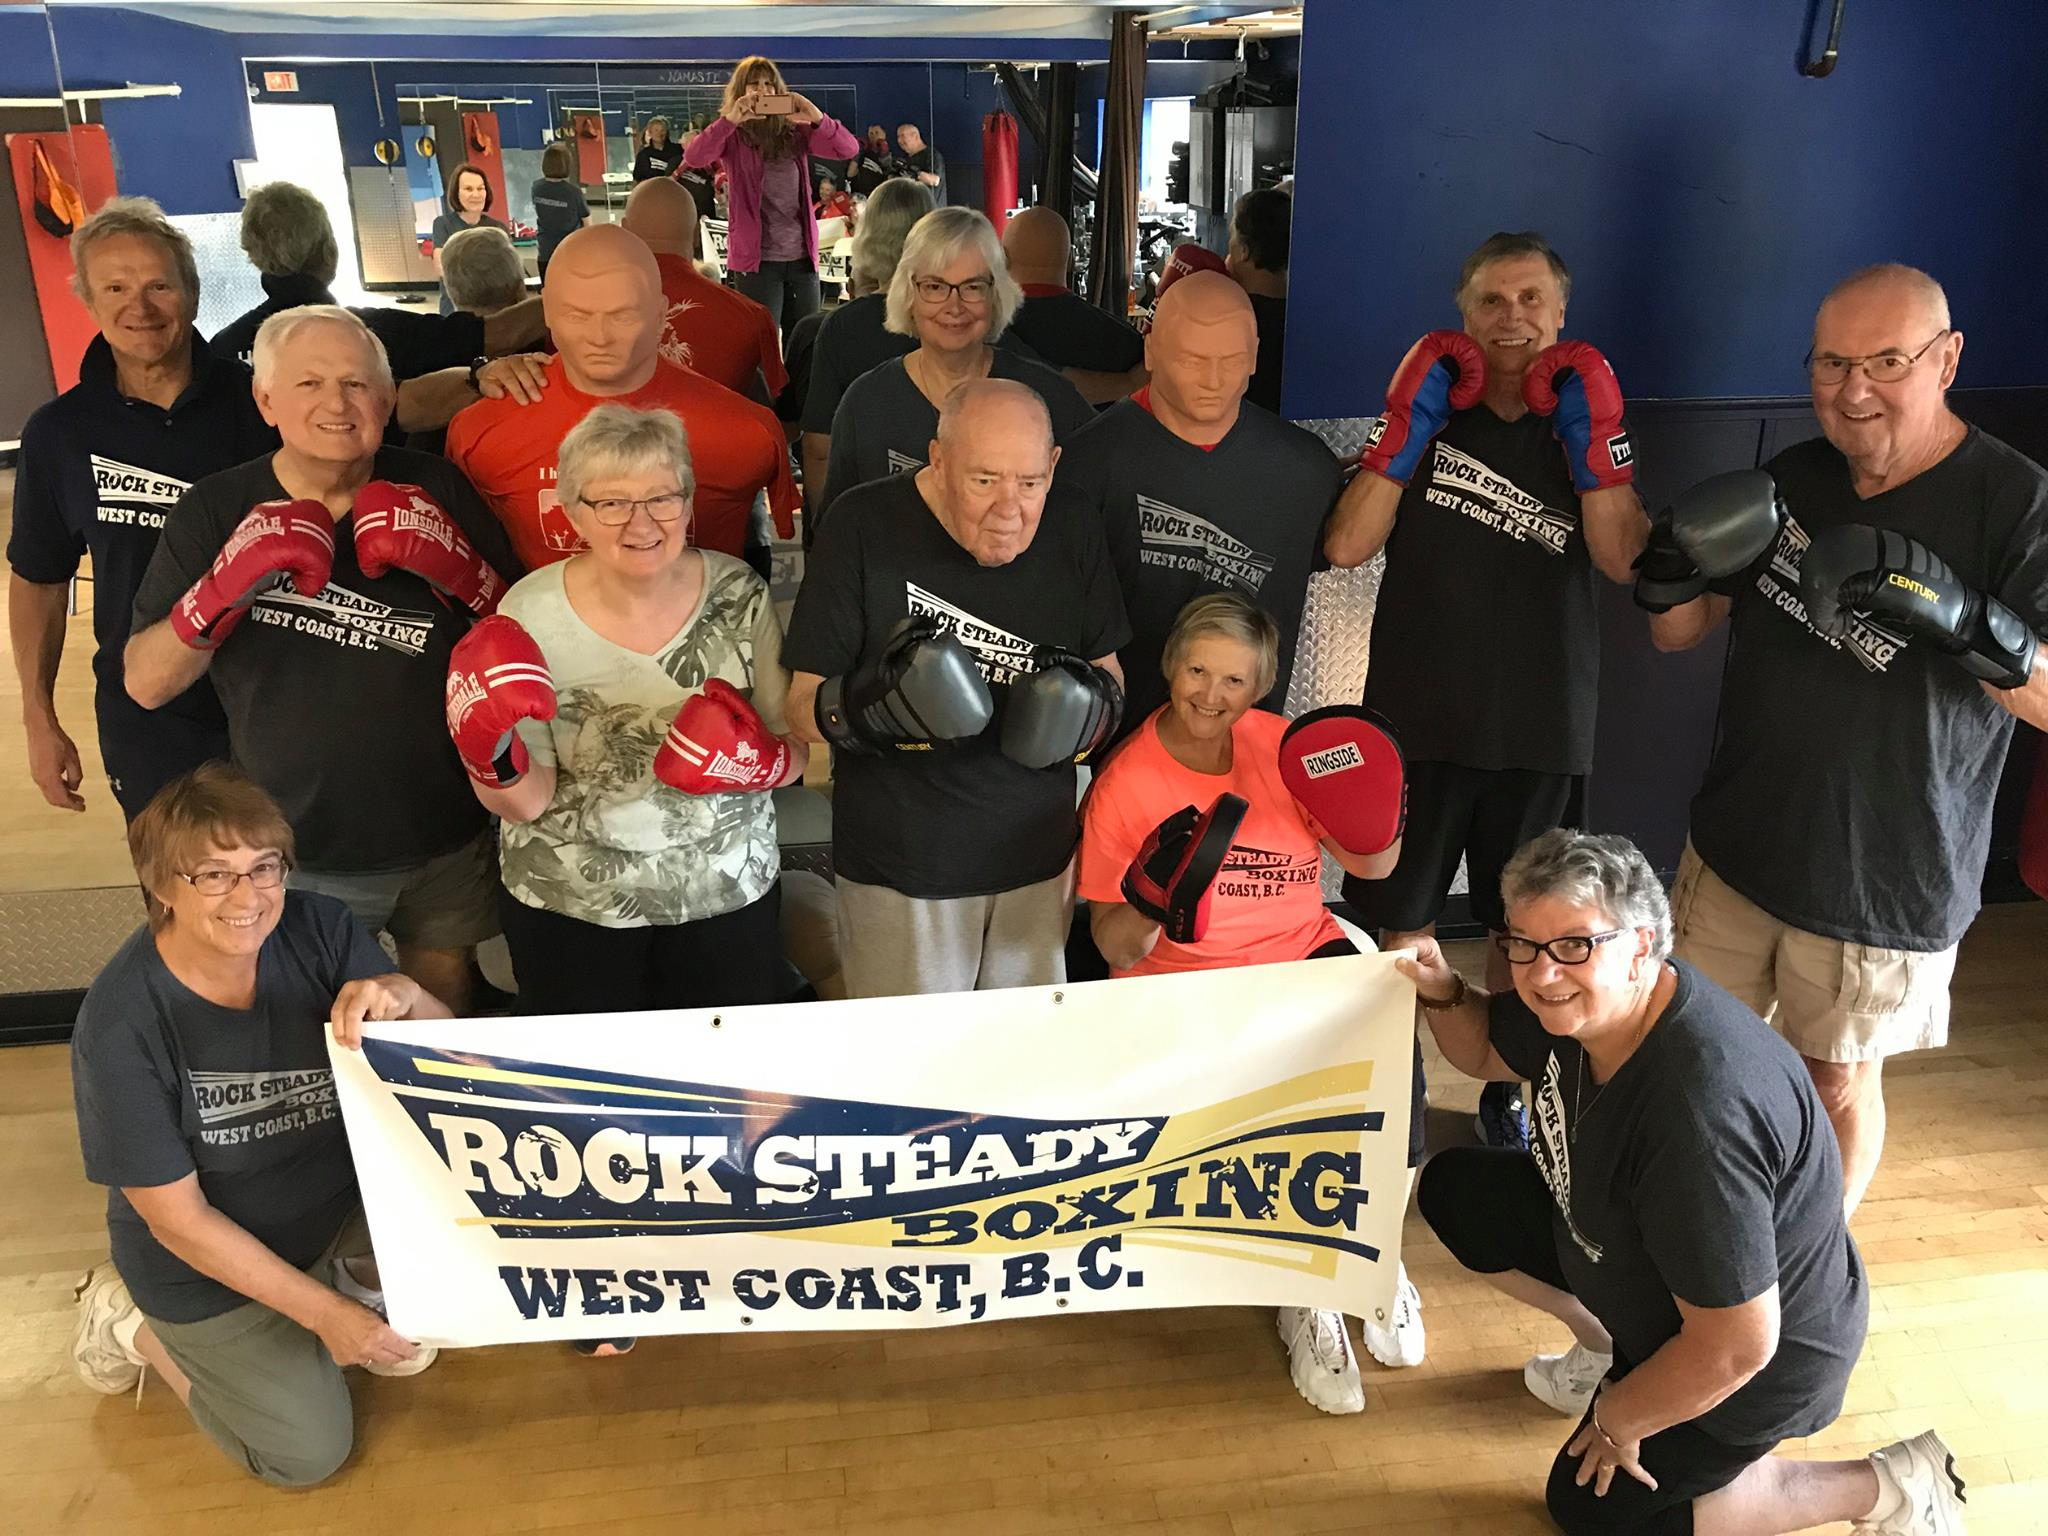 Tuesdays and Thursdays Alberni Fitness hosts the West Coast Rock Steady Boxing for Parkinsons!